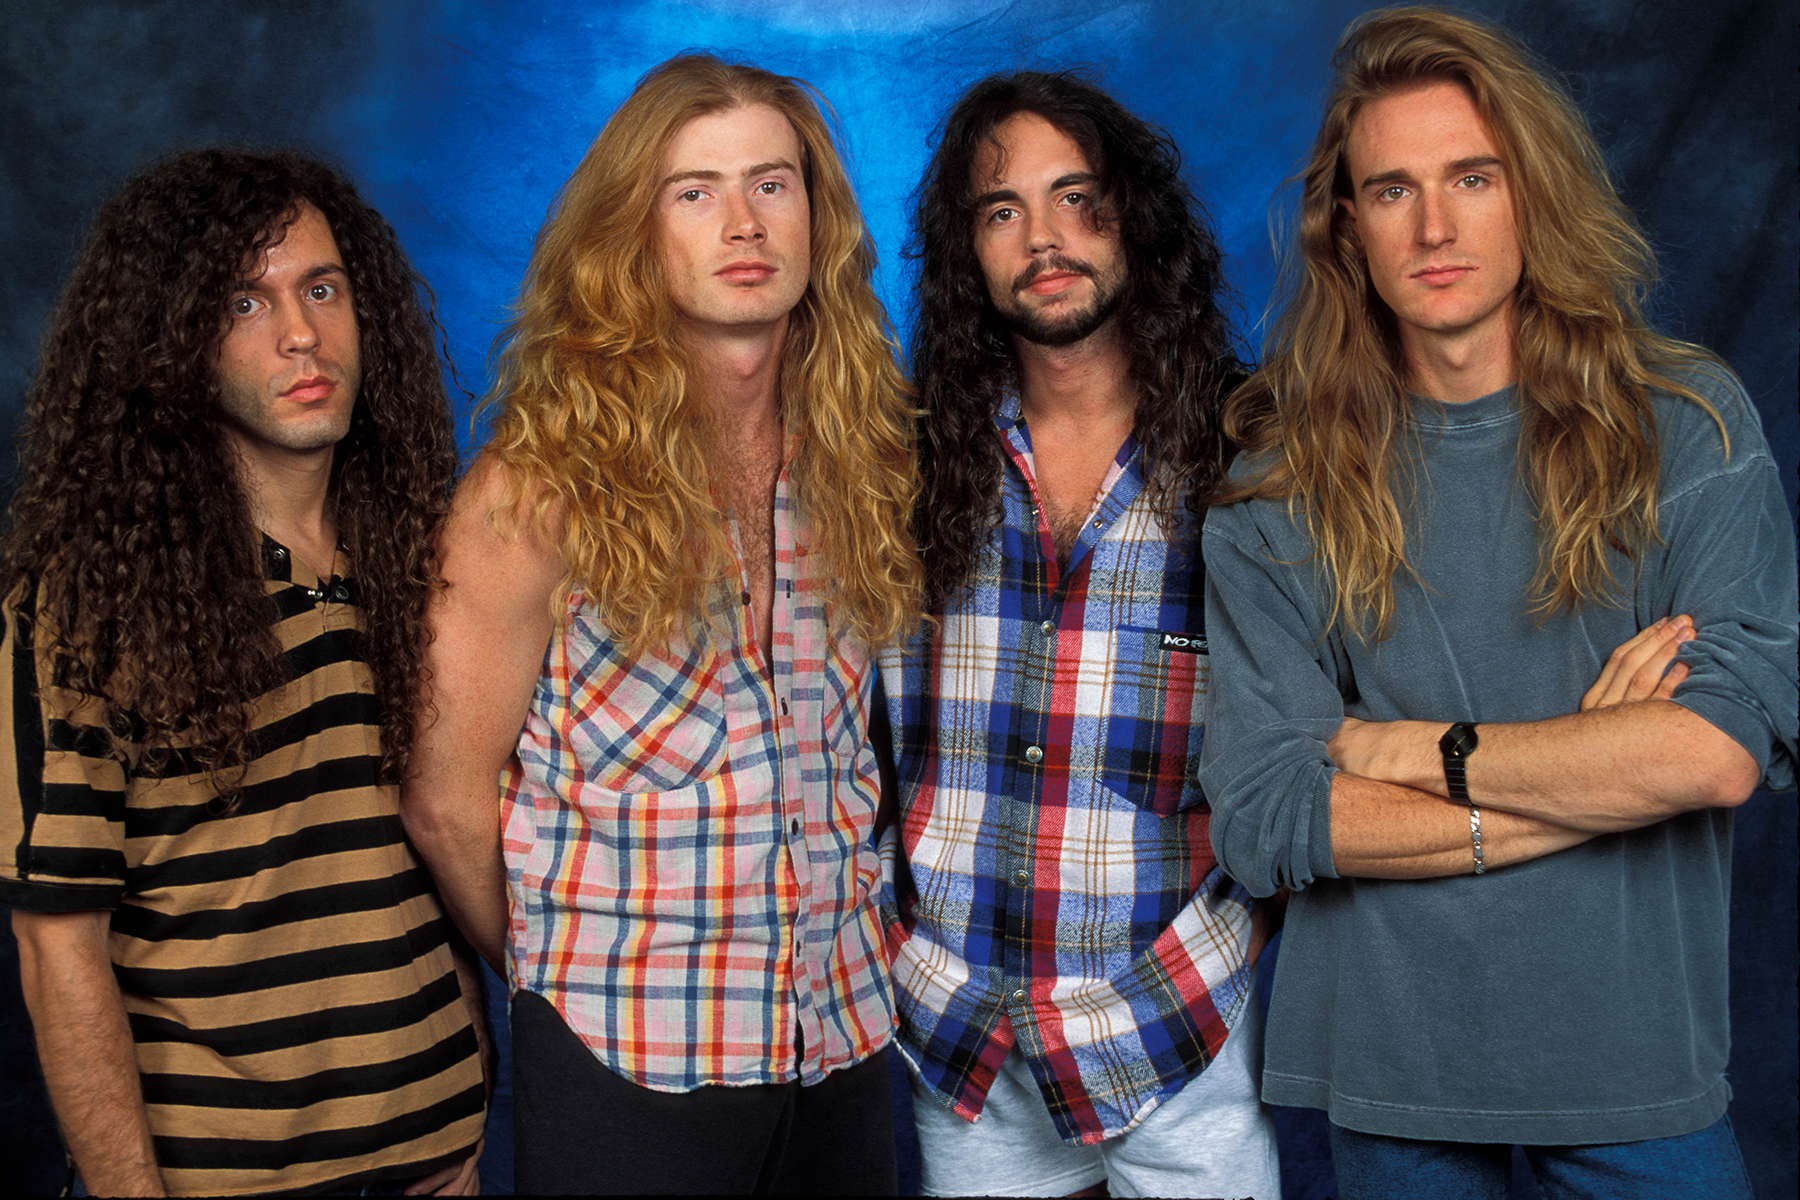 UNSPECIFIED - JANUARY 01:  STUDIO  Photo of David Ellefson and Dave MUSTAINE and Marty FRIEDMAN and MEGADETH, L-R: Marty Friedman, Dave Mustaine, Nick Menza, David Ellefson  (Photo by Mick Hutson/Redferns)